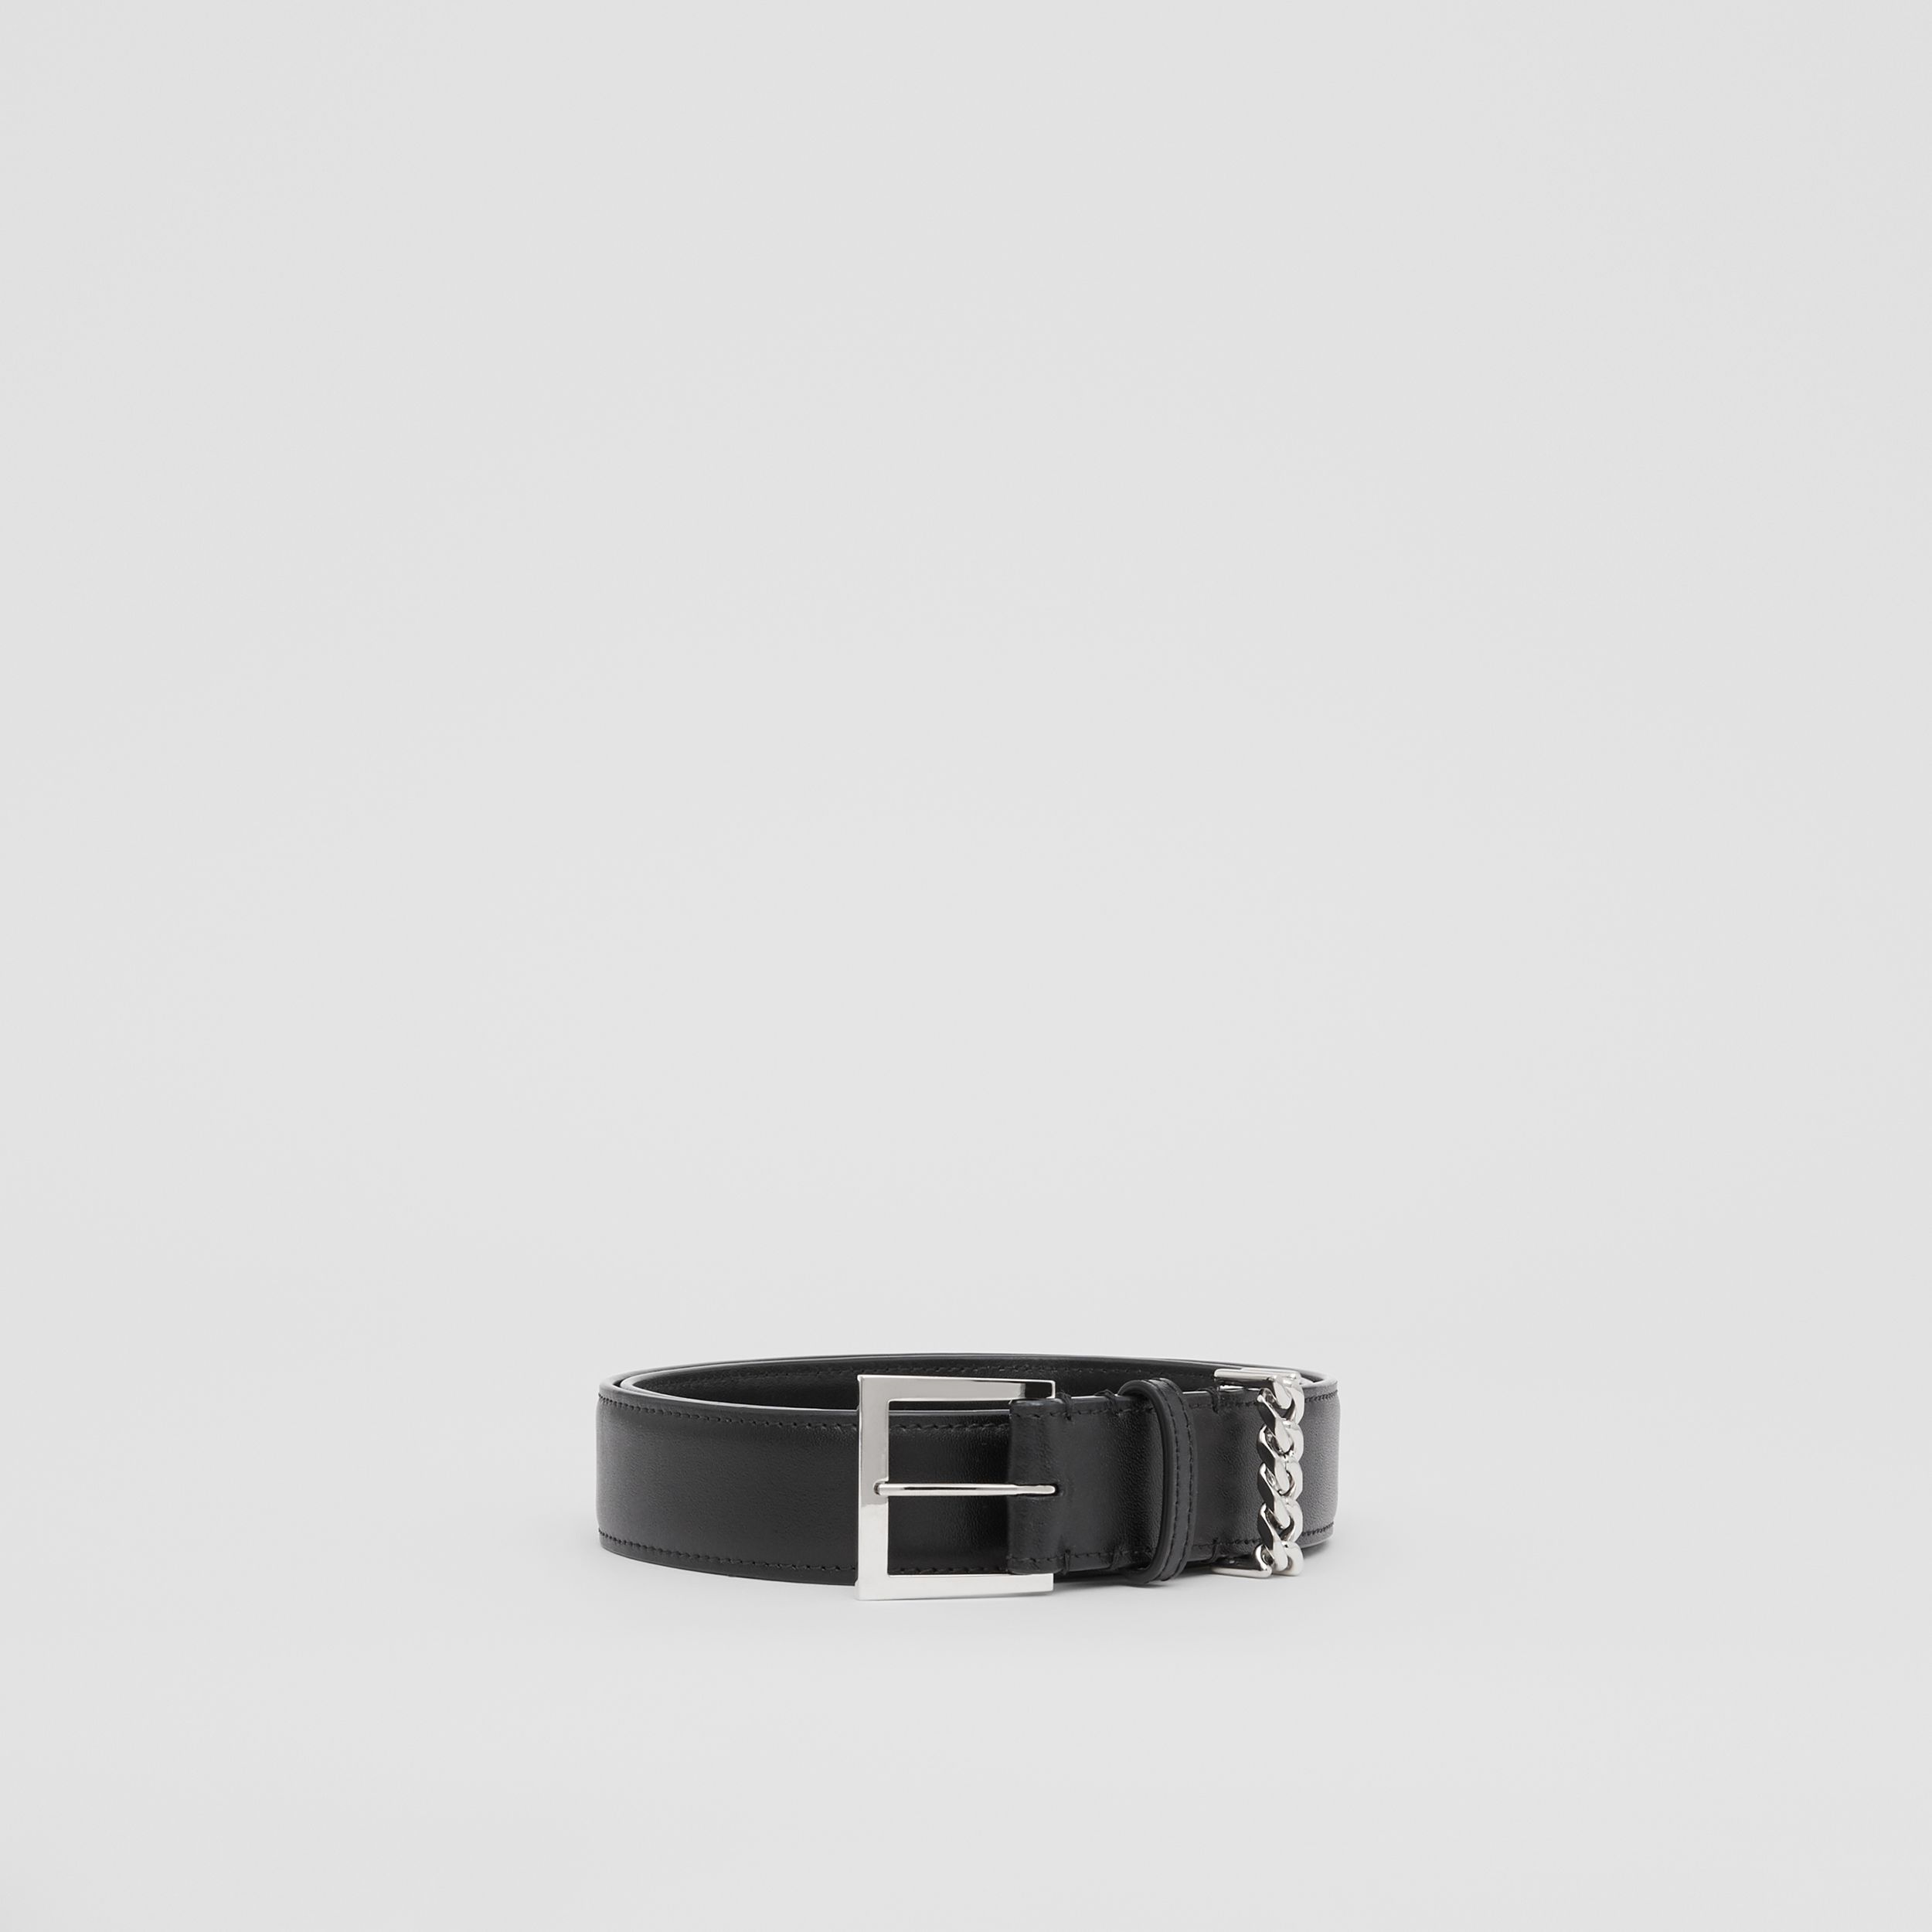 Chain Detail Leather Belt in Black/palladium | Burberry - 4